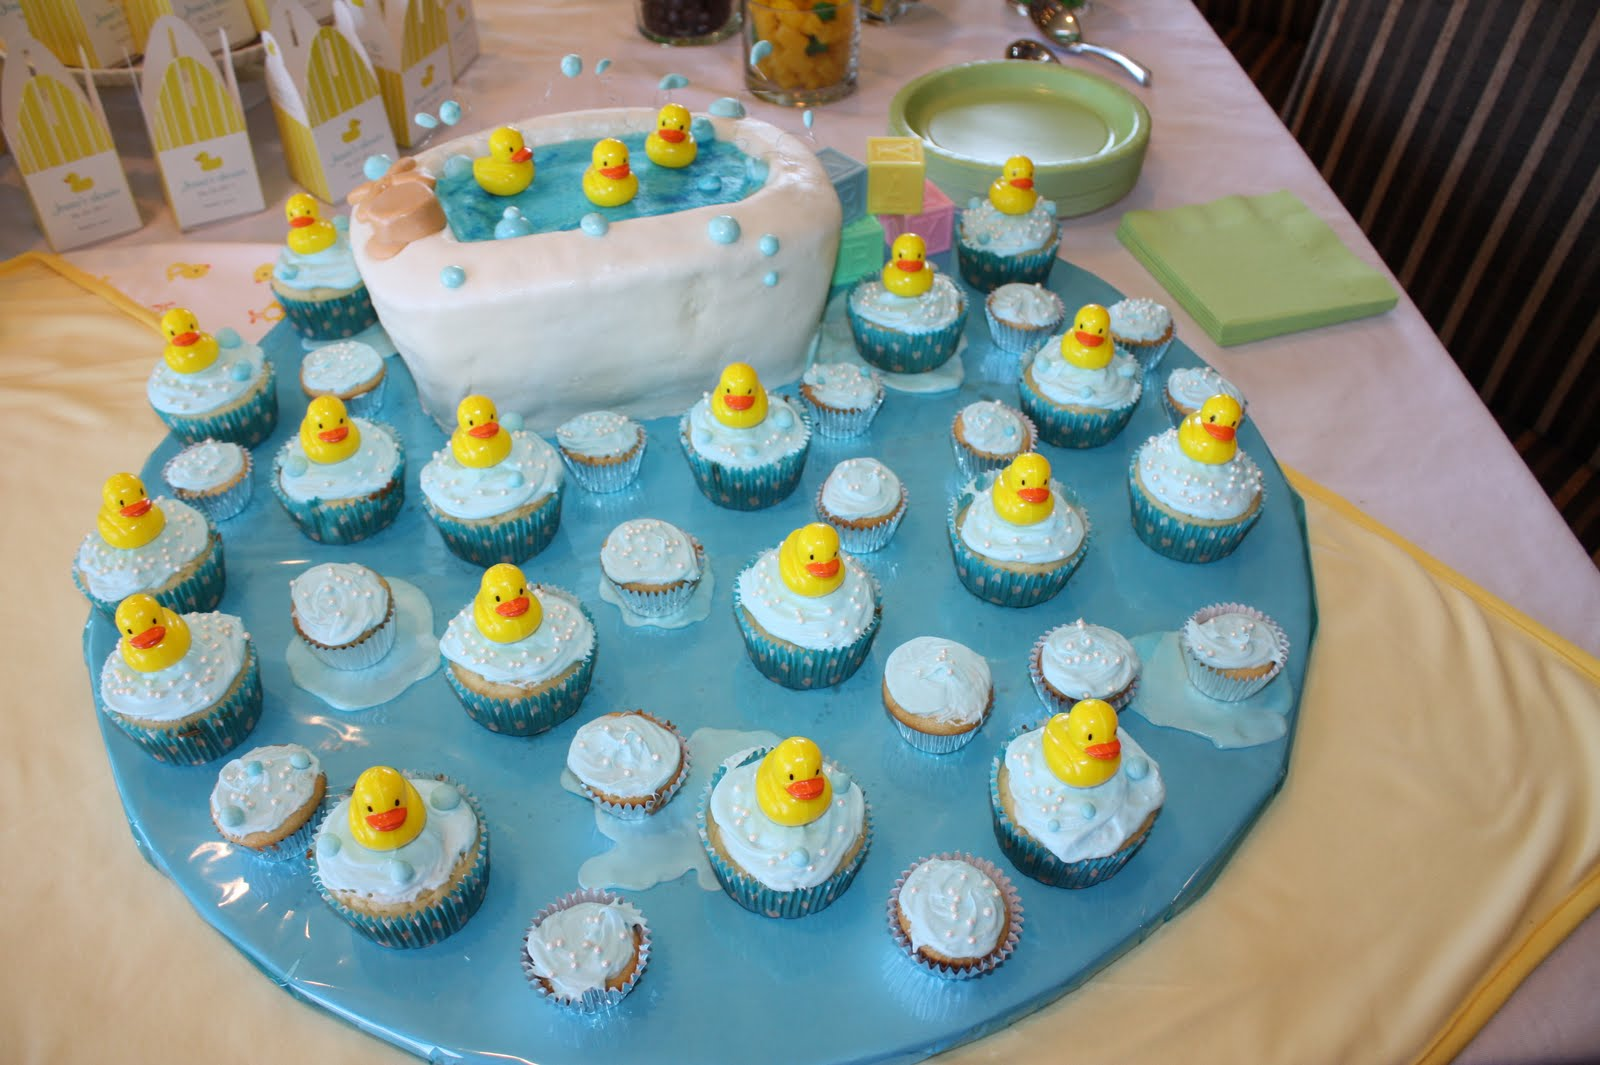 70 baby shower cakes and cupcakes ideas for Baby shower decoration ideas for boys